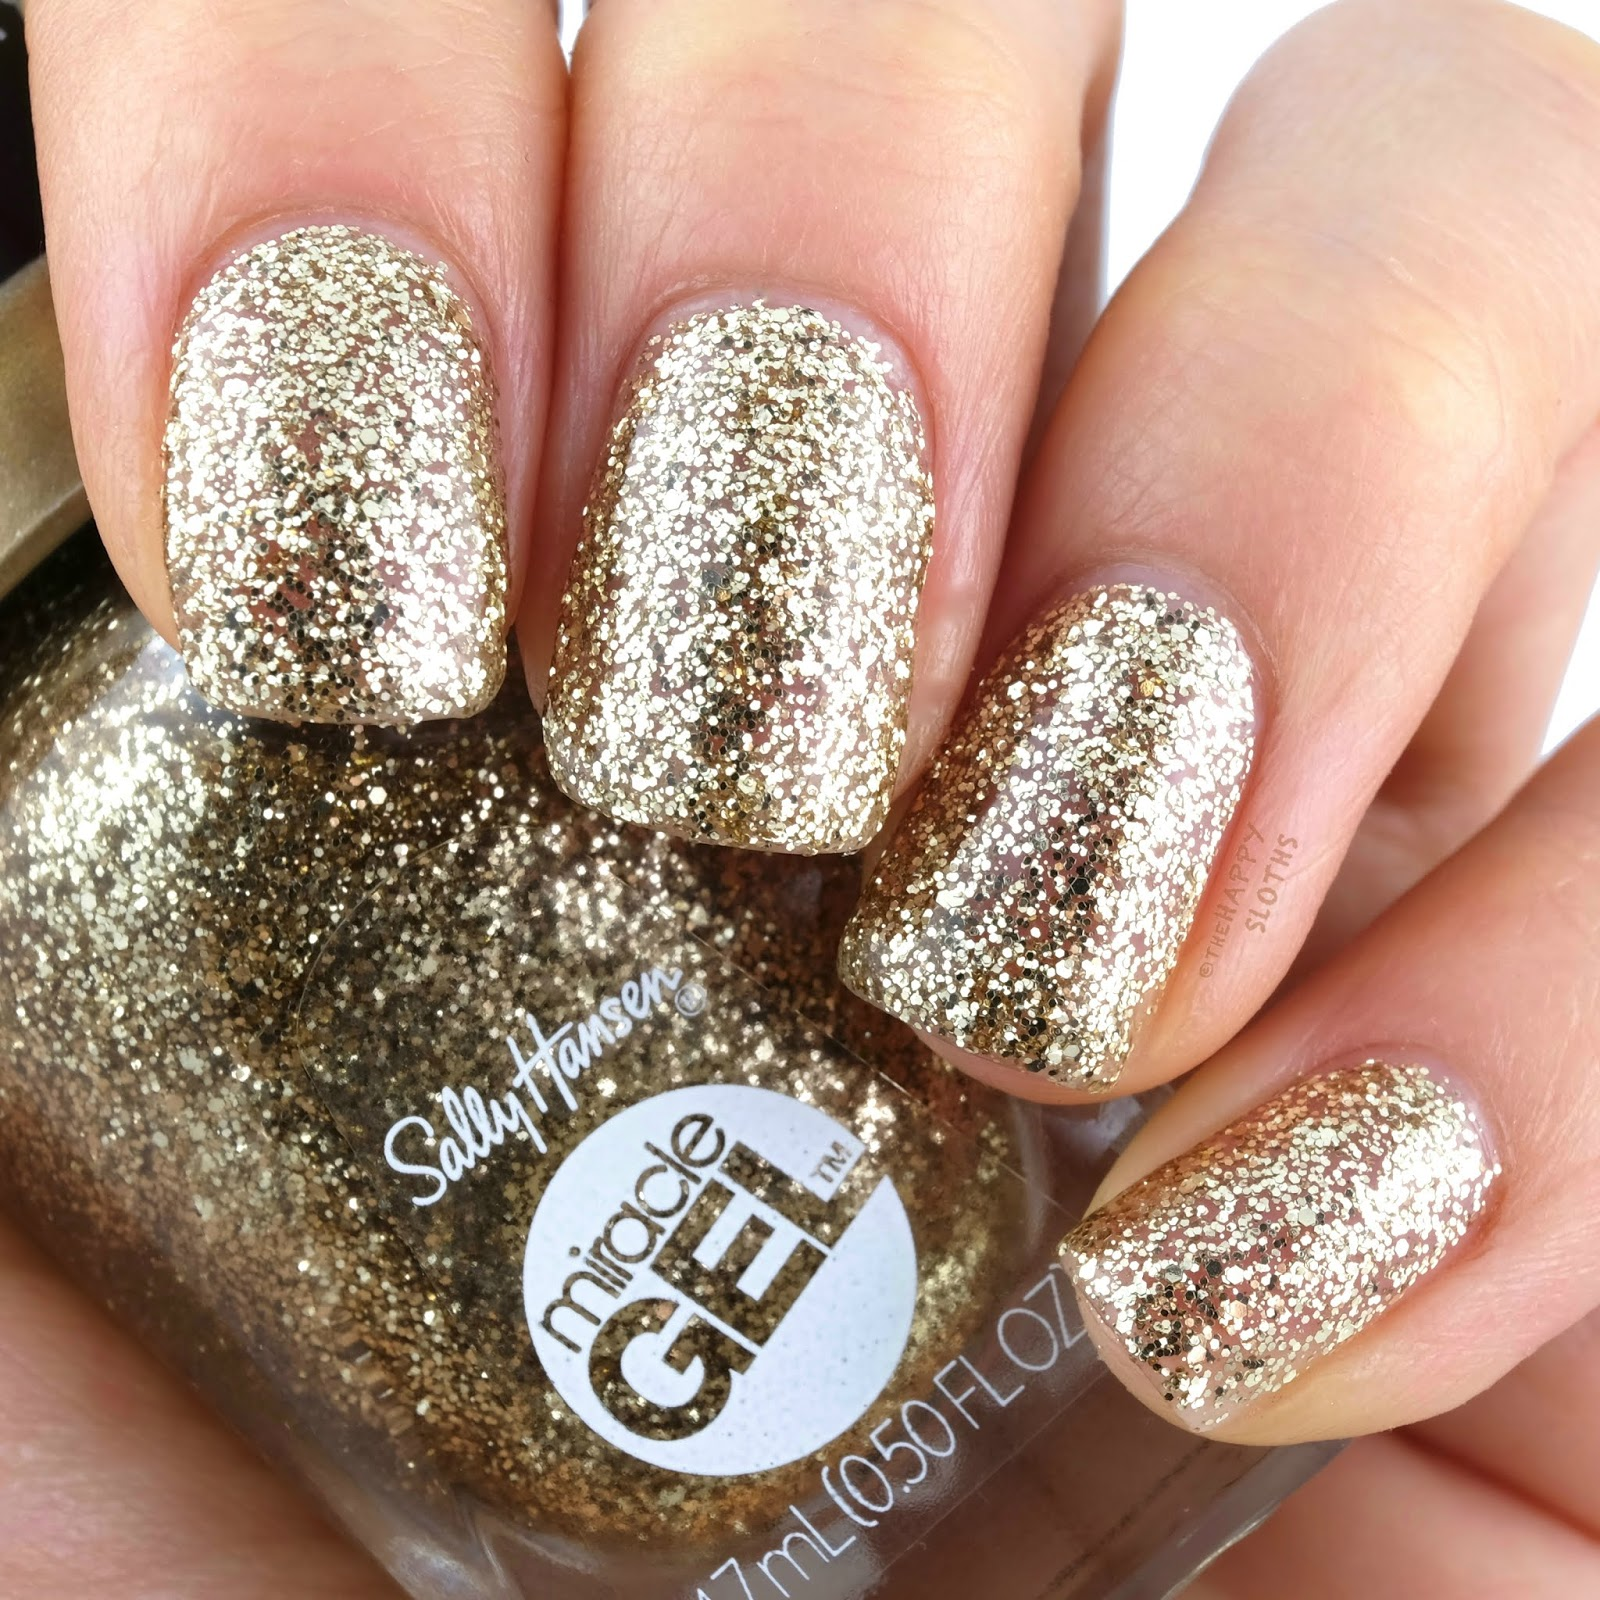 Sally Hansen   Holiday 2019 Oh My Gold! Miracle Gel Collection   152 Good as Gold: Review and Swatches